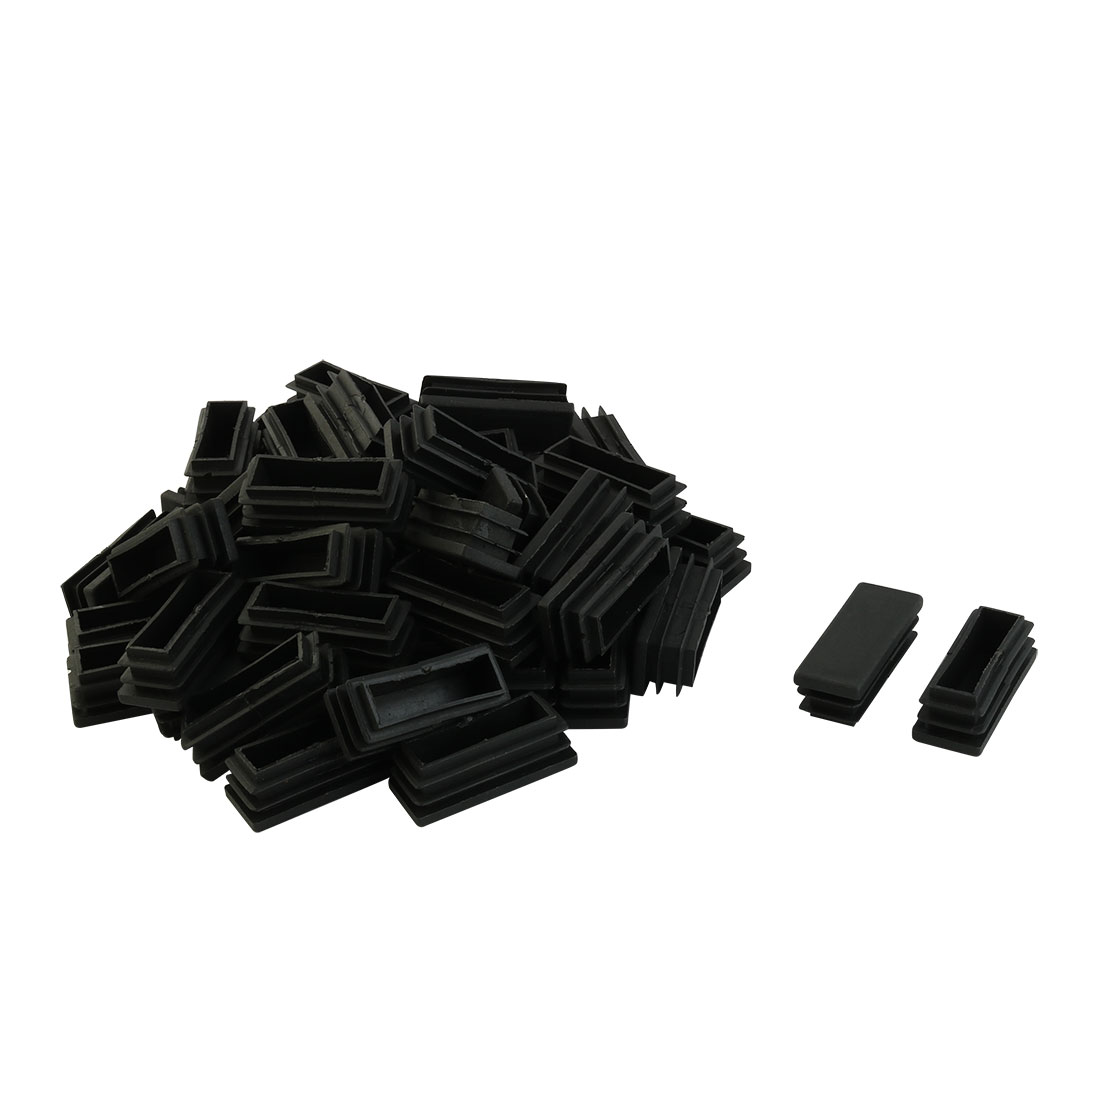 Home Office No Scratch Floor Protection Chair Leg Tube Insert Black 50 x 20mm 50pcs